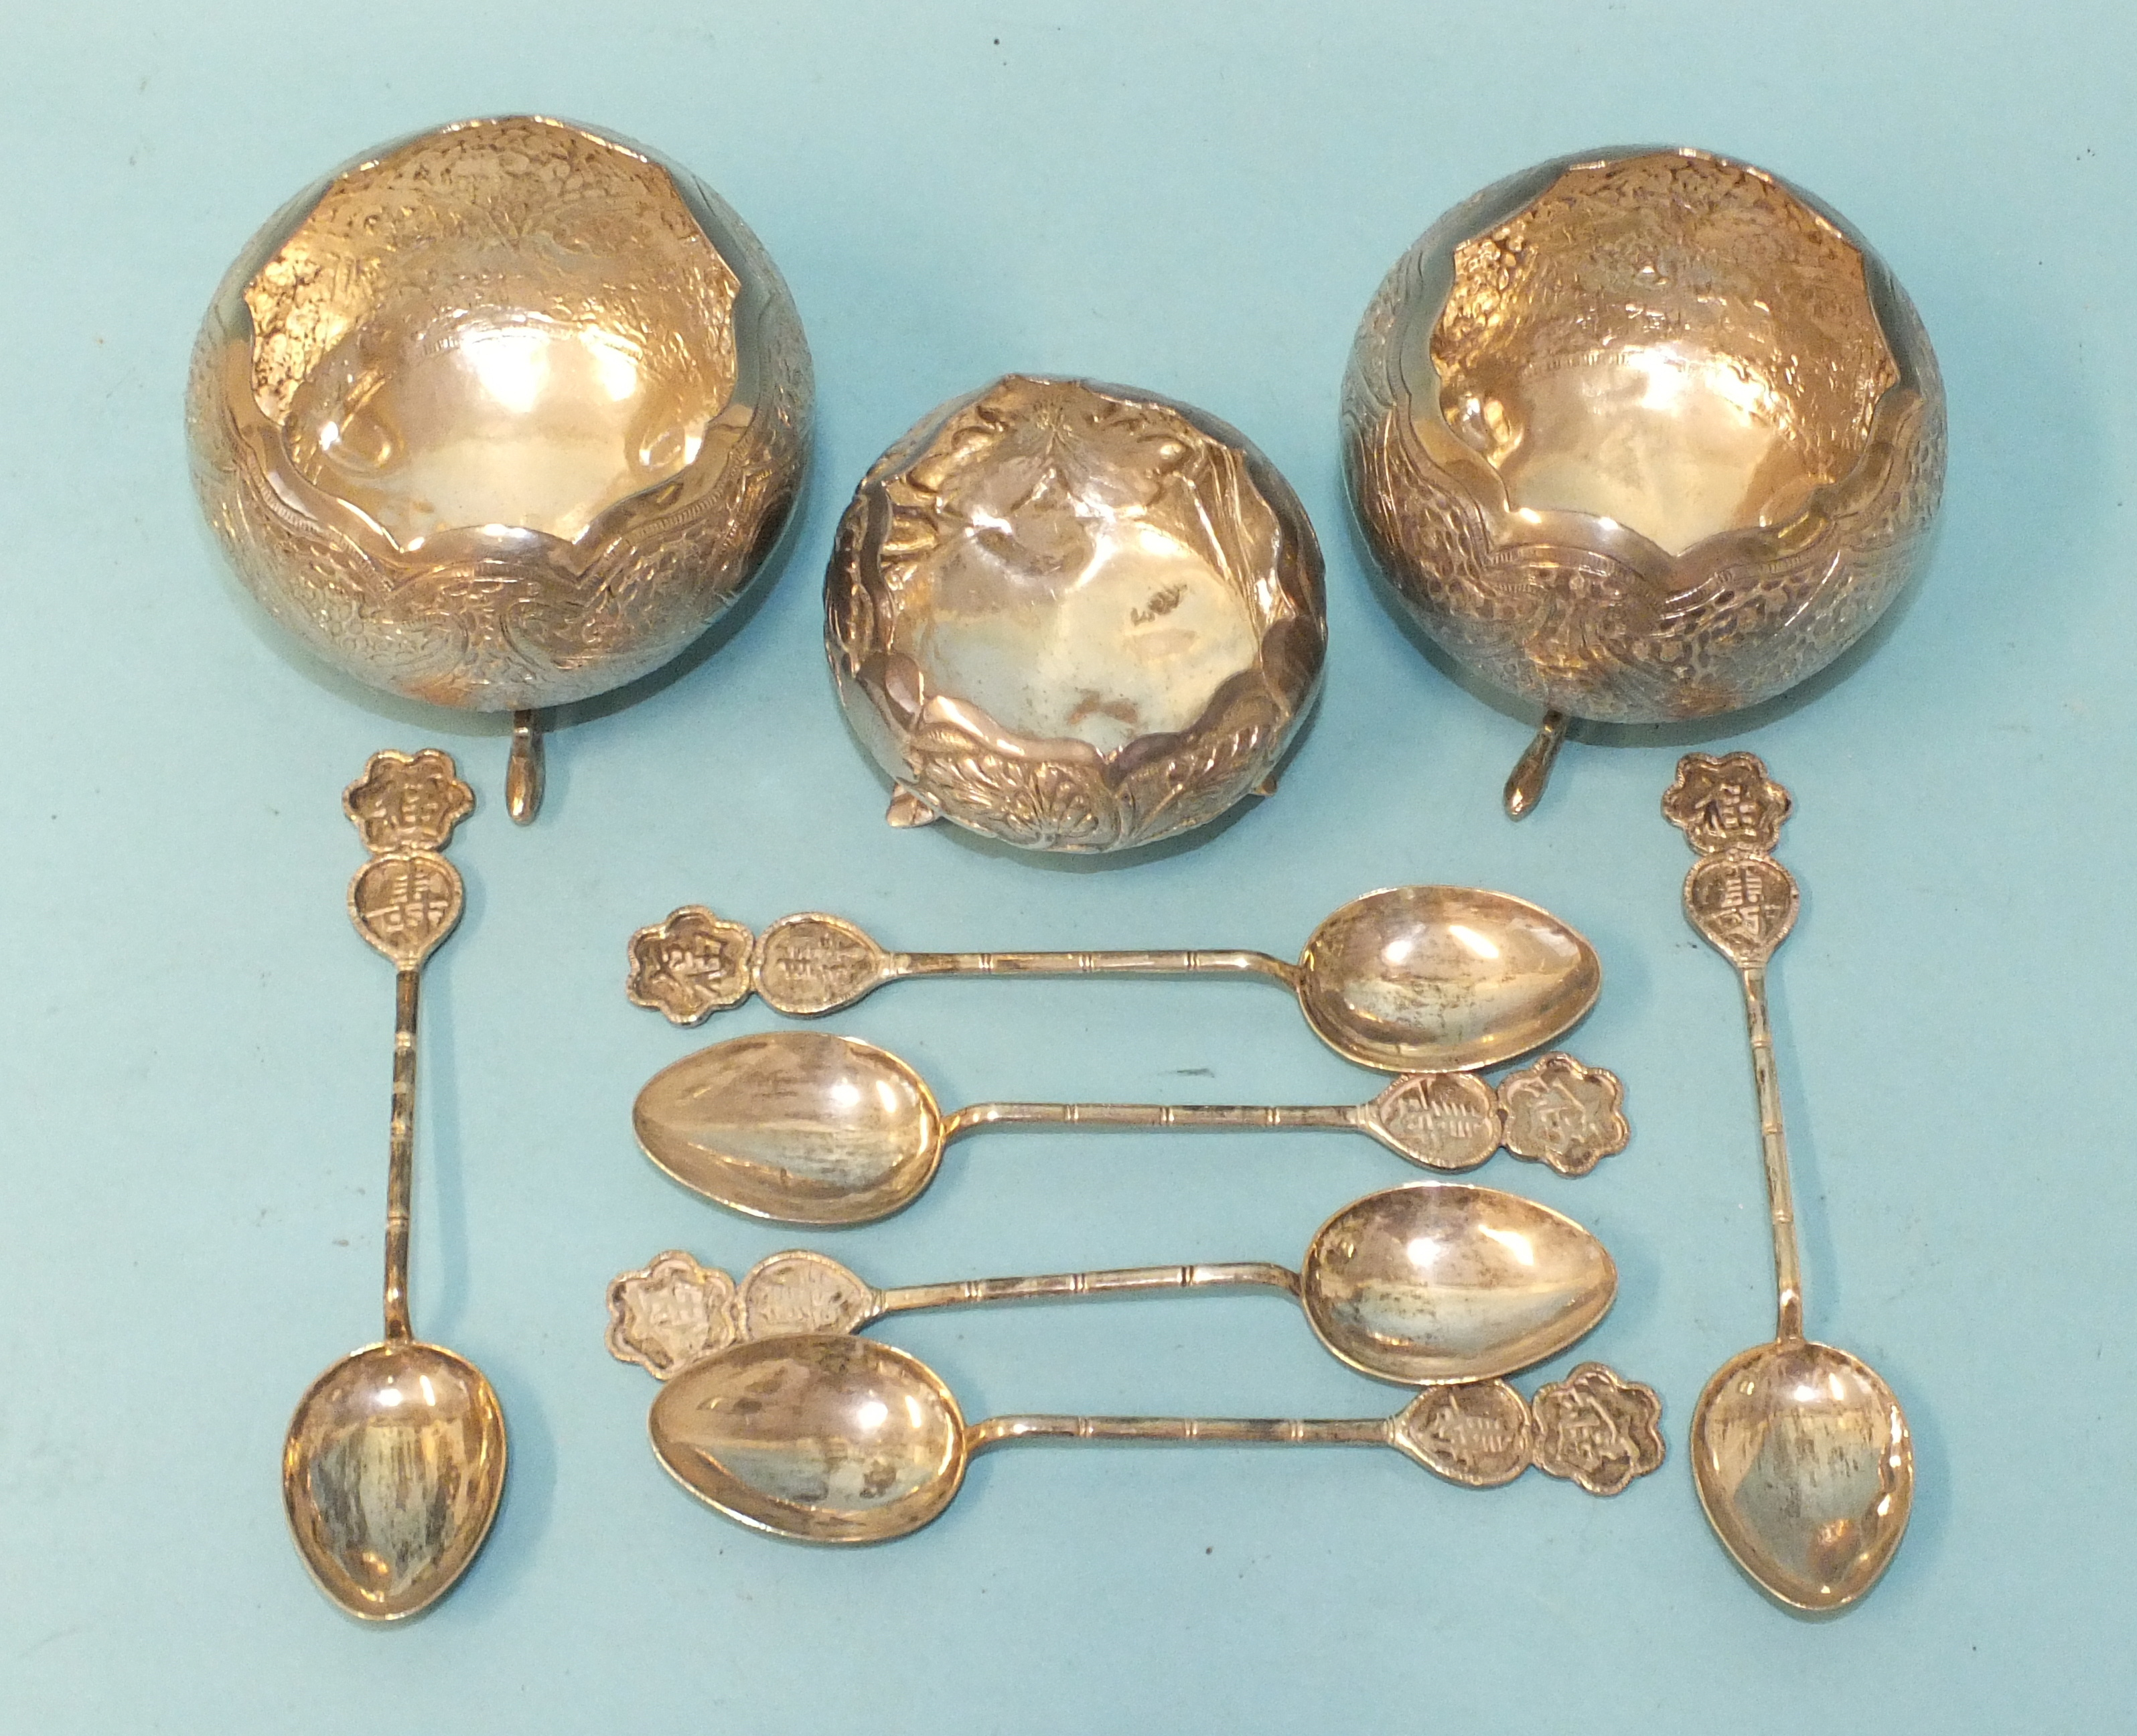 A set of six Oriental silver teaspoons with Chinese character terminals, marked '900 Silver', two